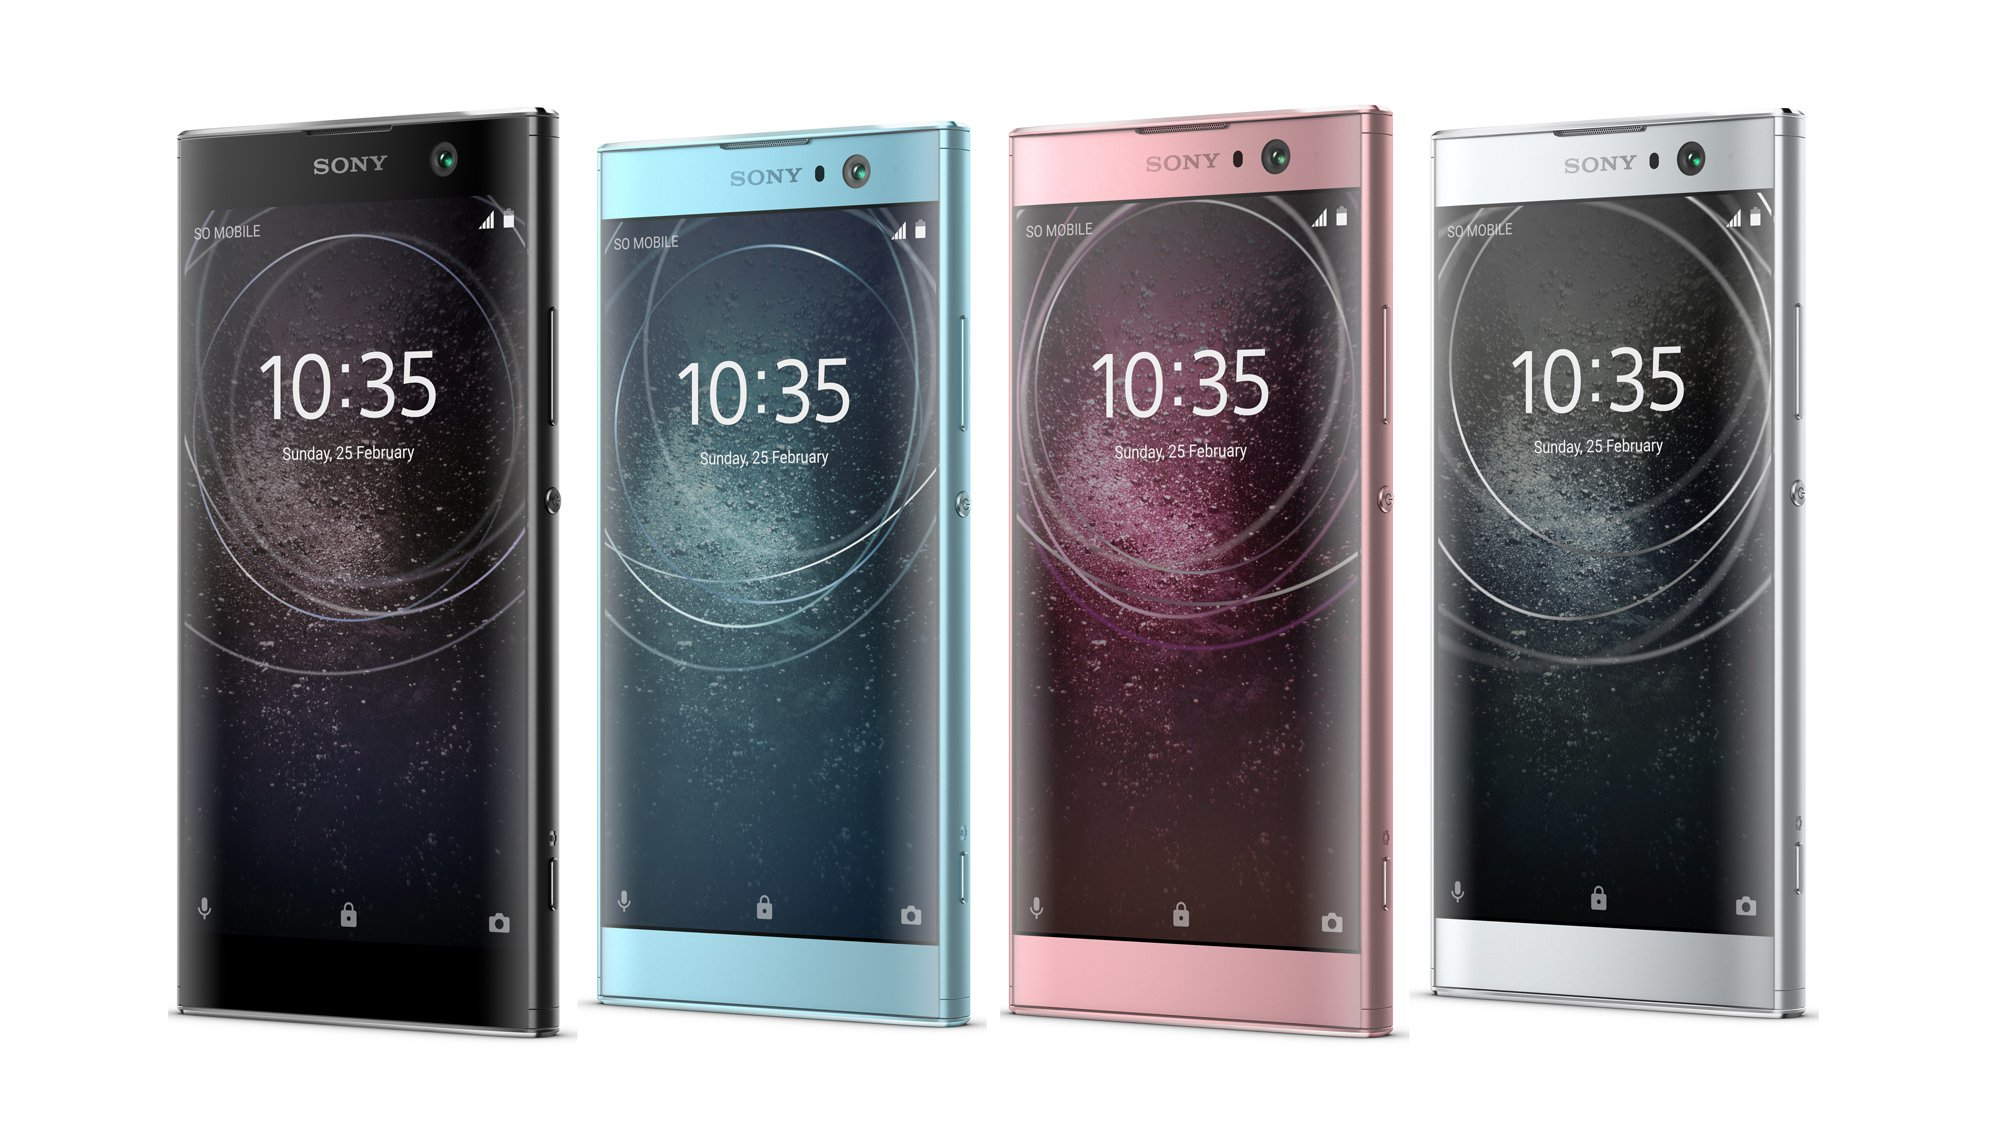 sony xperia xa2 sony s mid range smartphone announced at ces 2018 expert reviews